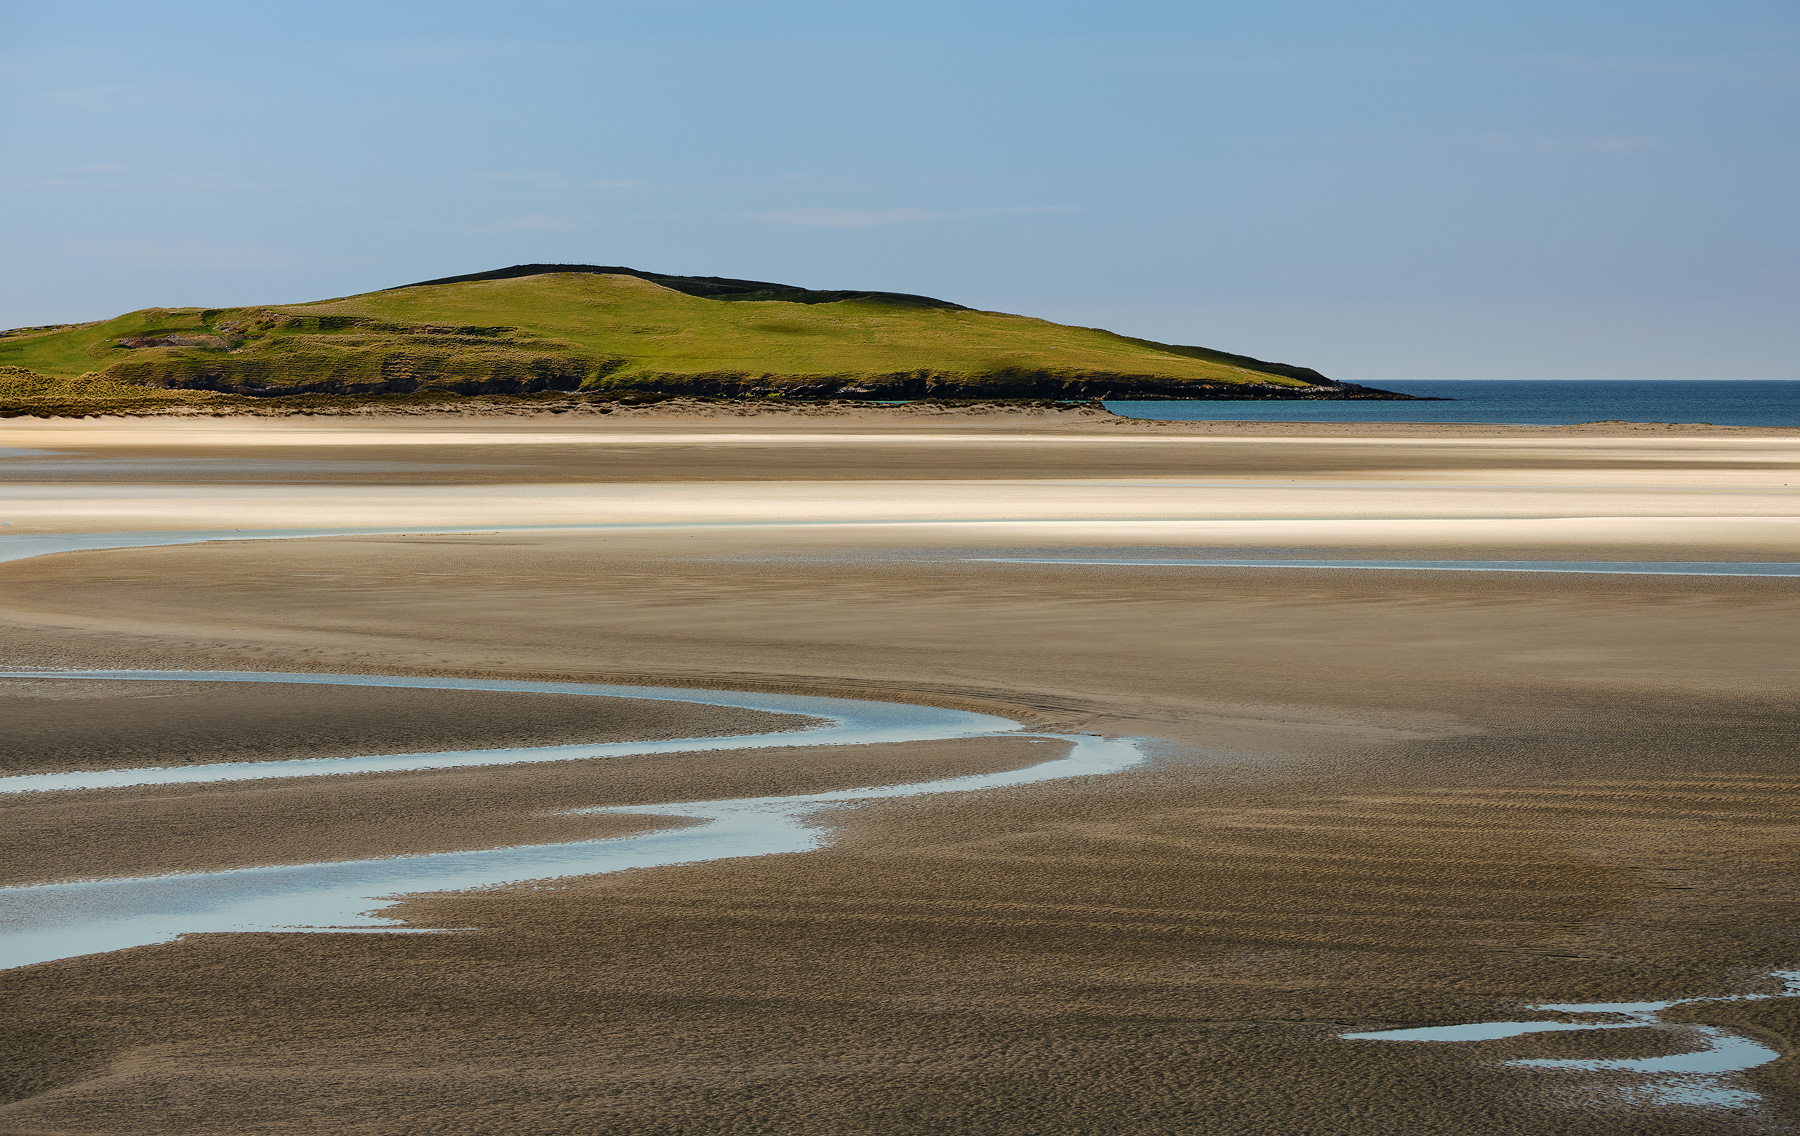 Gorgeous tidal artwork within the tidal basin of Luskentyre bay as viewed from an elevated viewpoint at Loganstir in the Isle of Harris